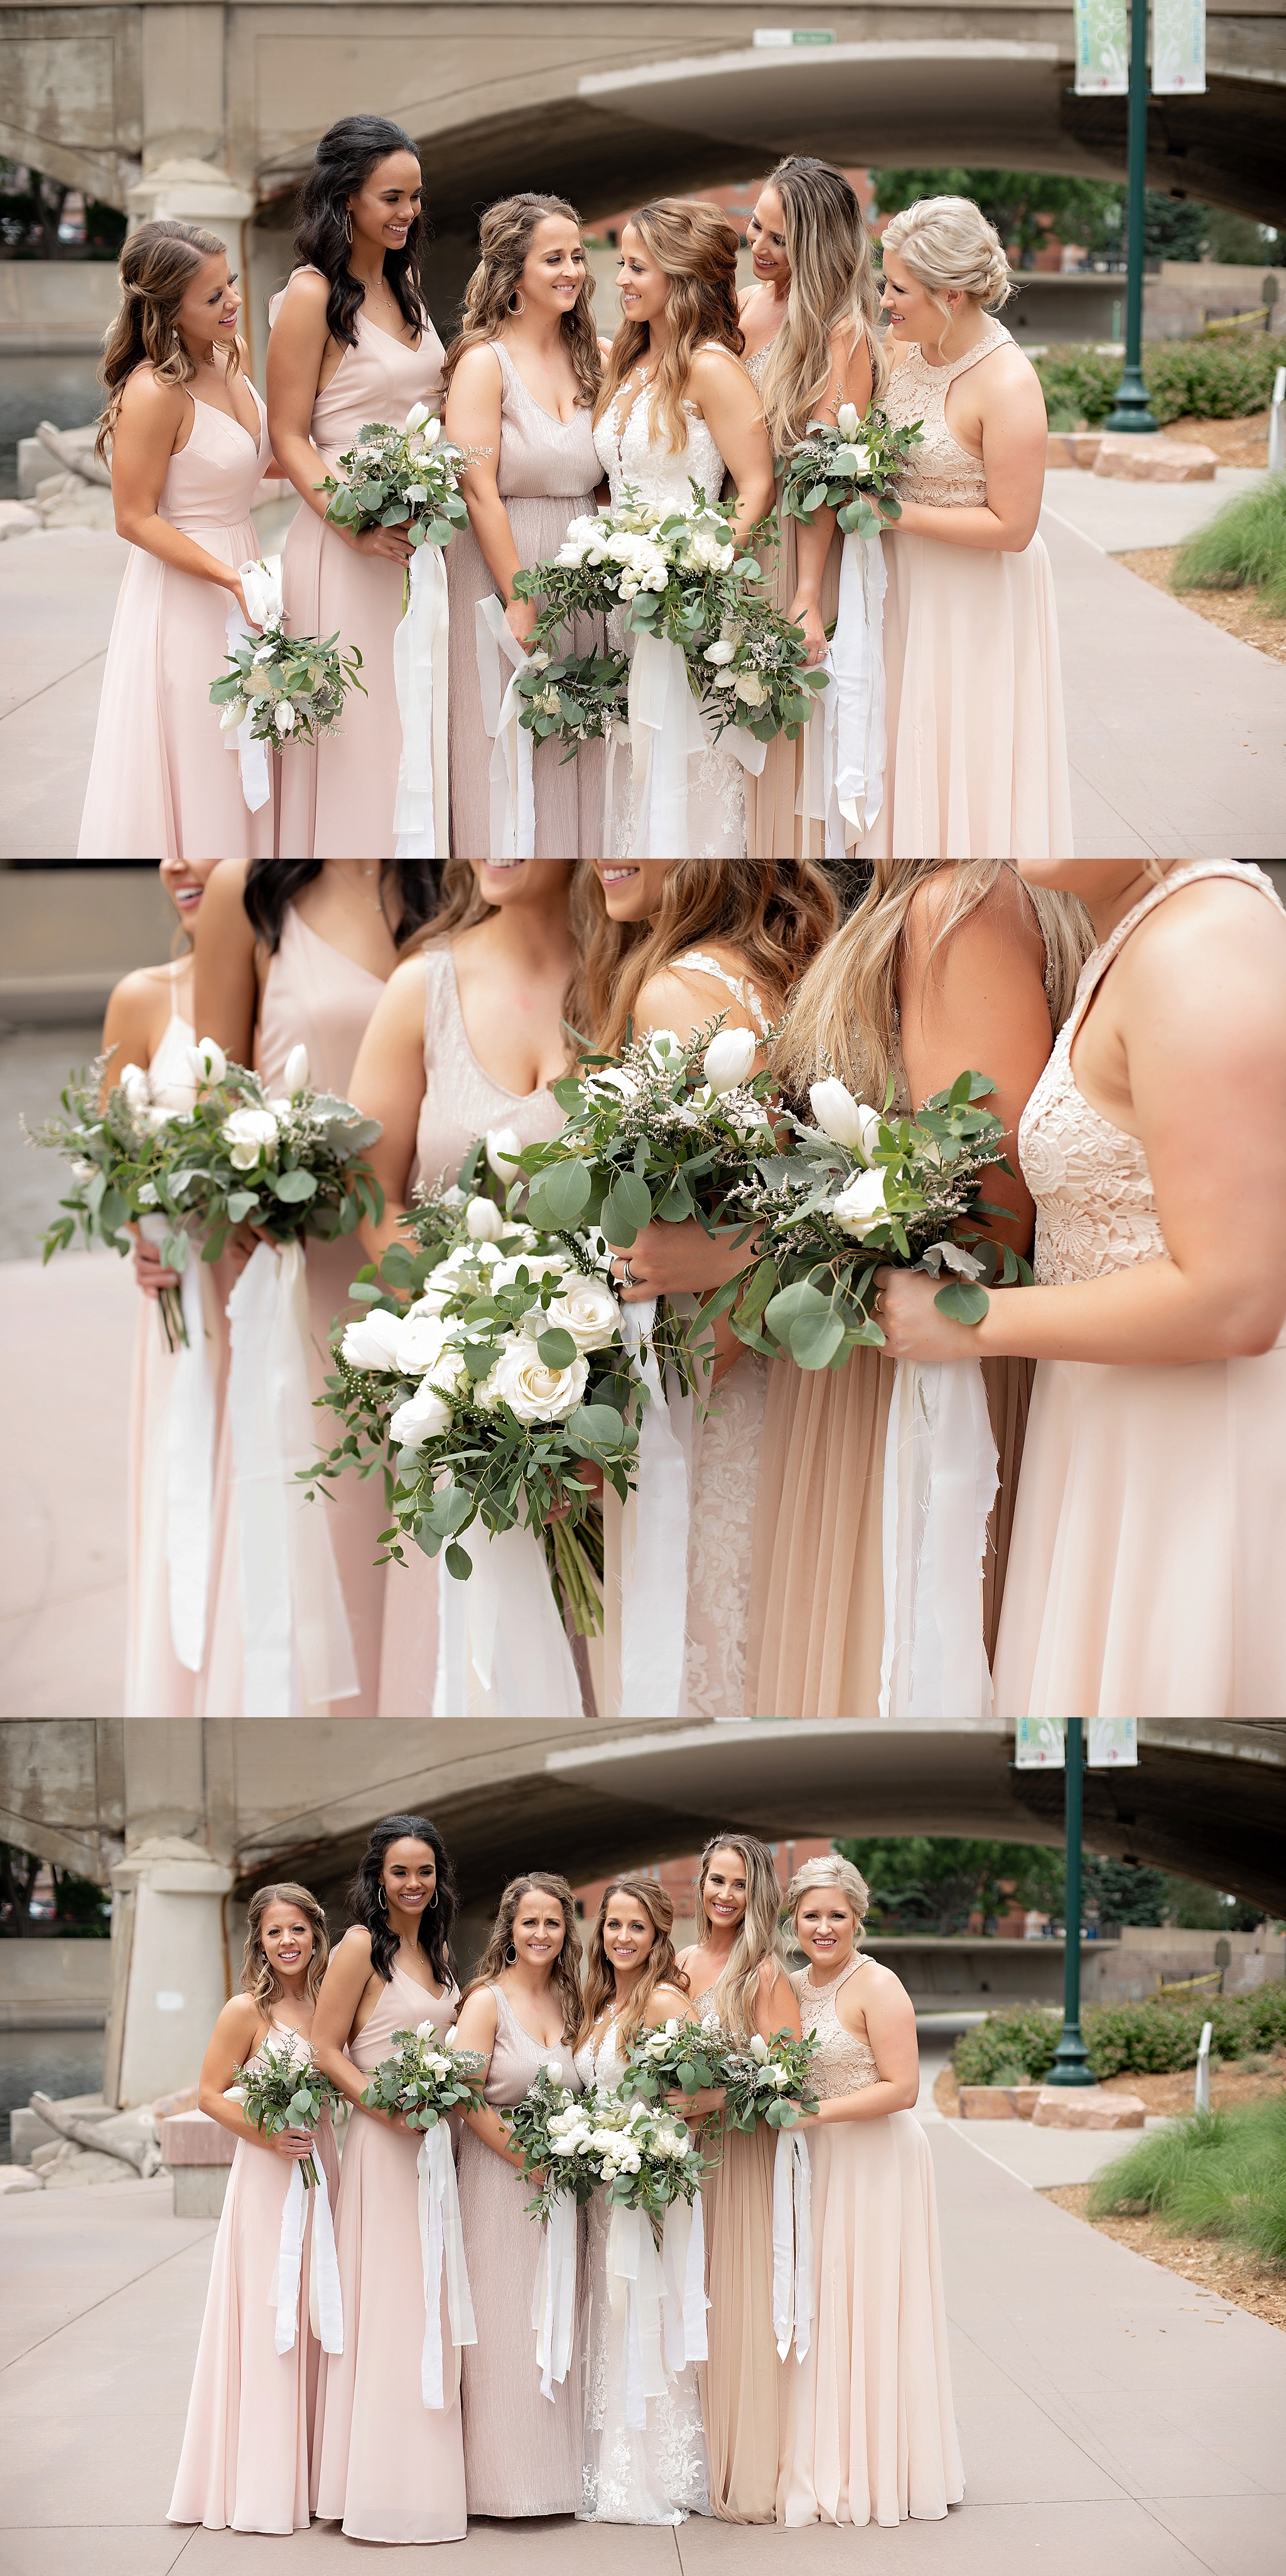 bridesmaids in coordinating blush and gold dresses